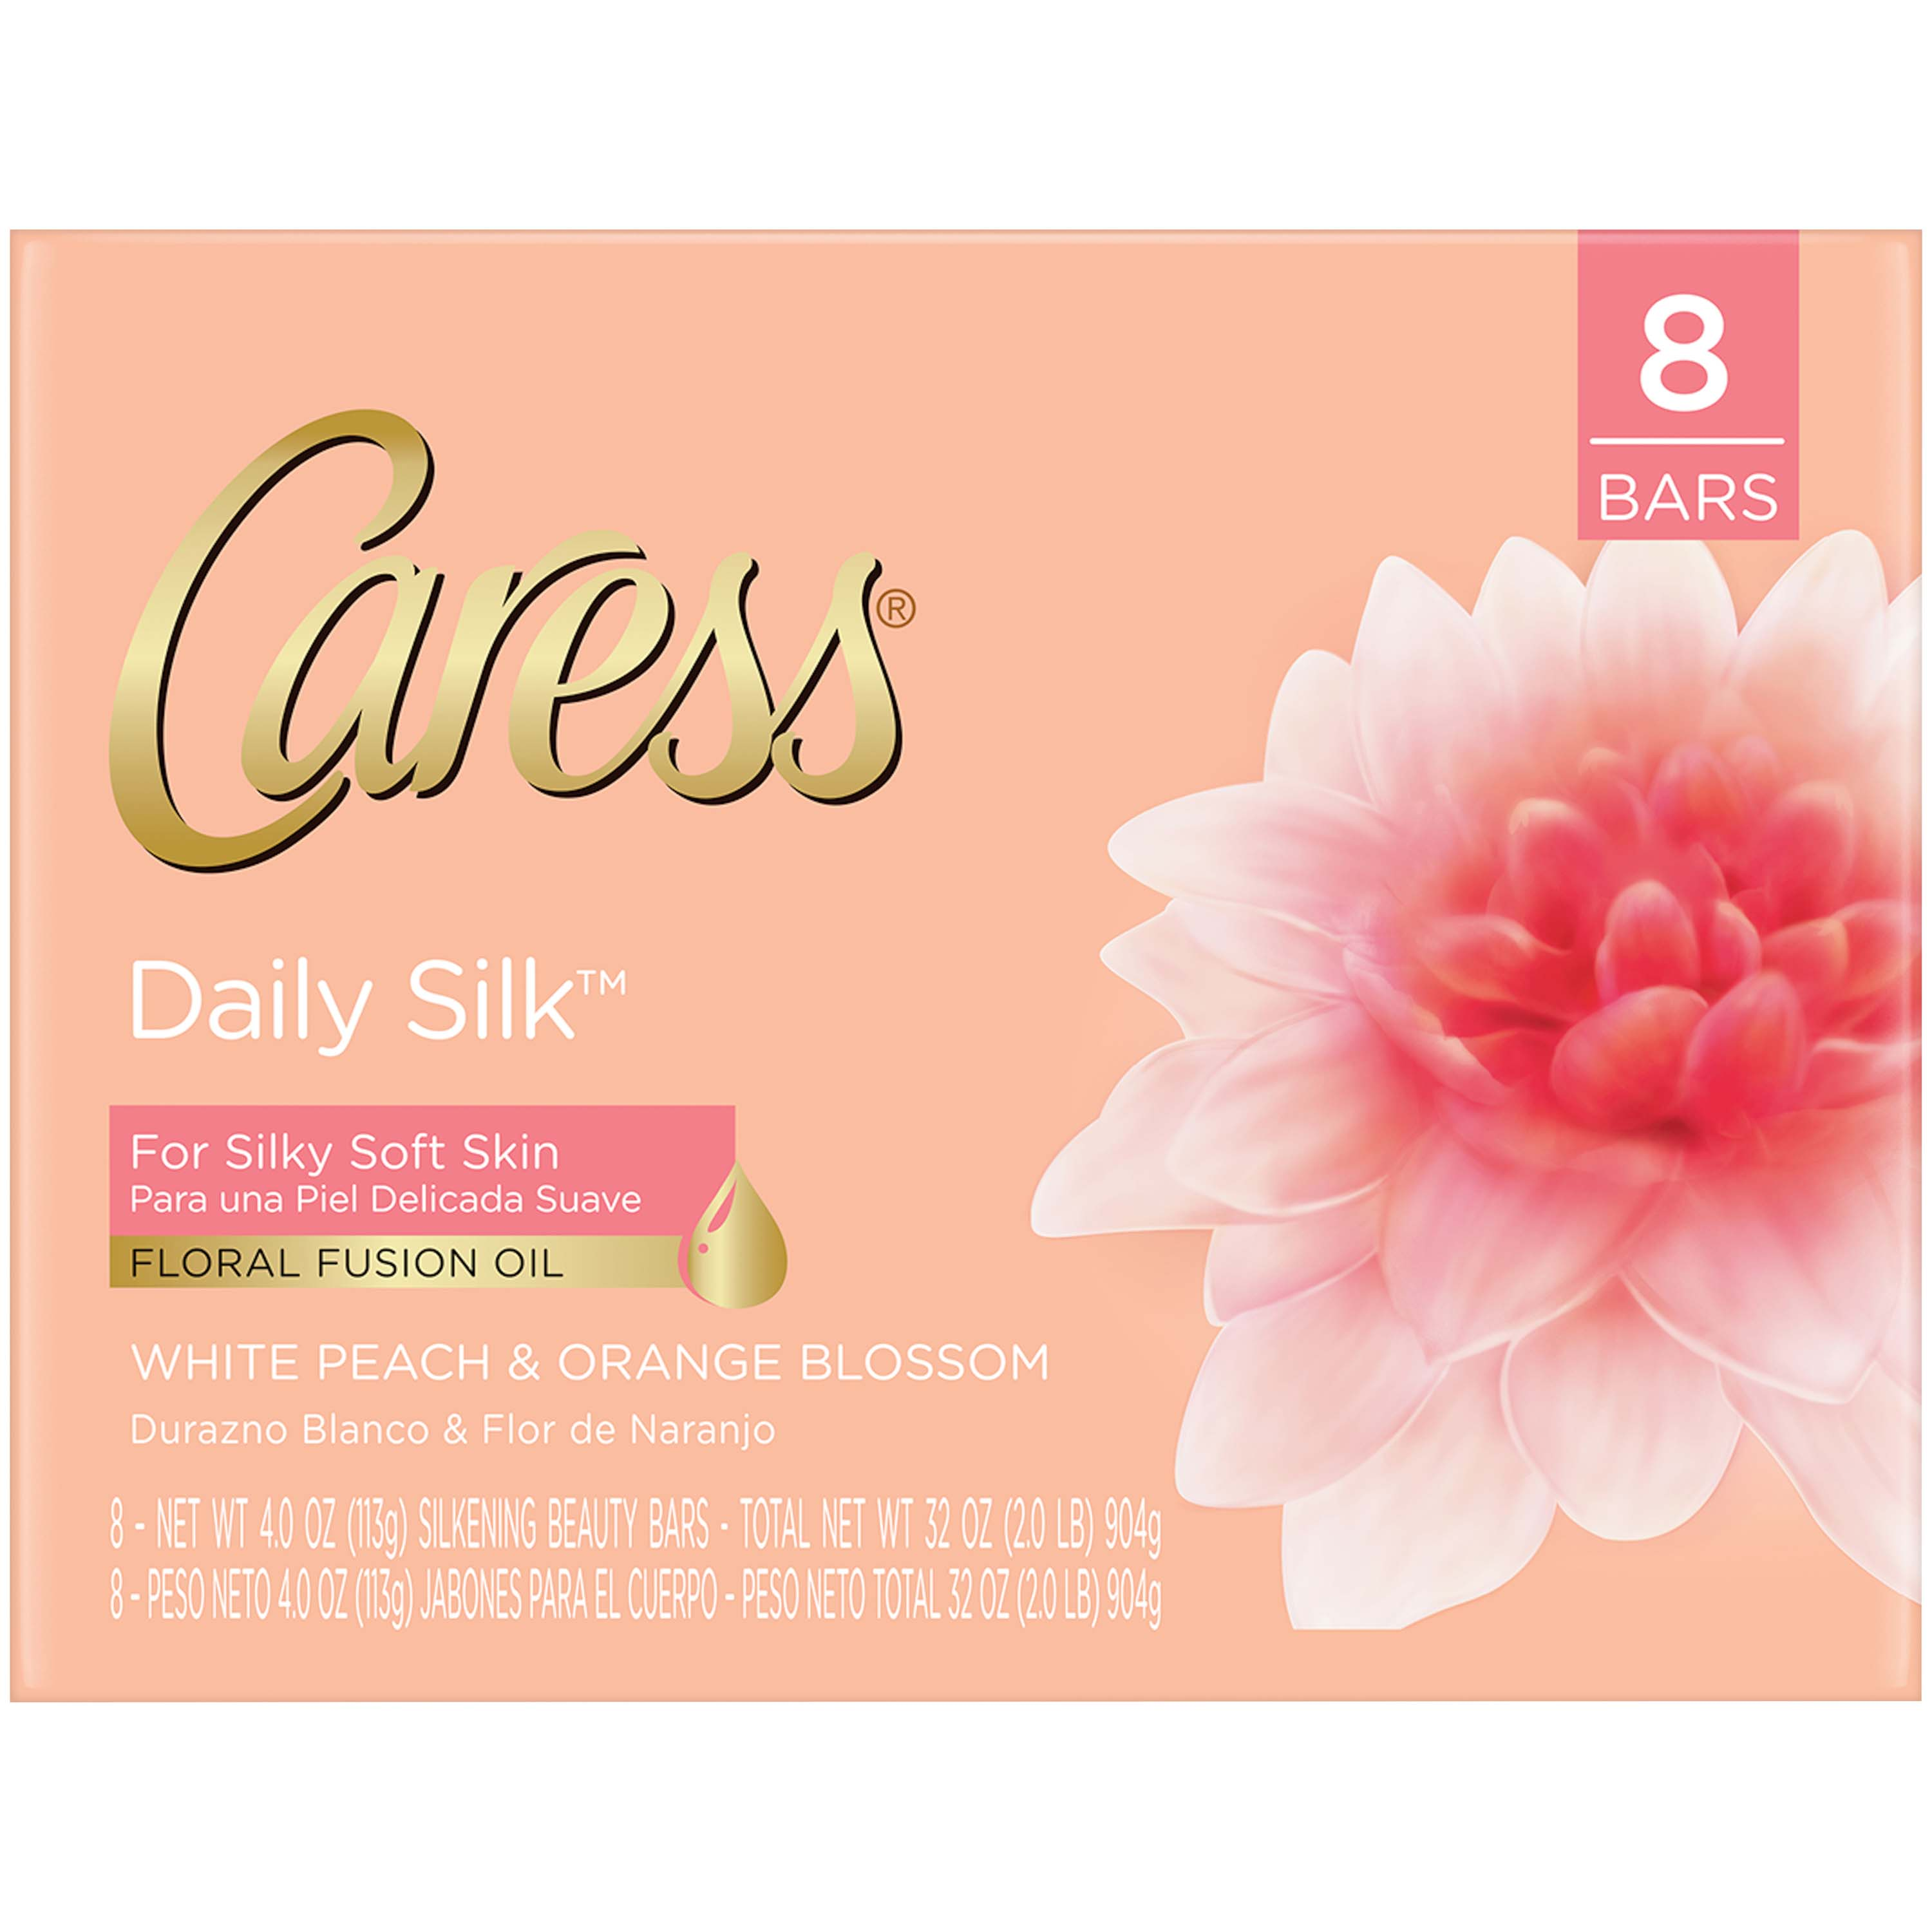 Caress Daily Silk Beauty Bar, 4 oz, 8 Bar